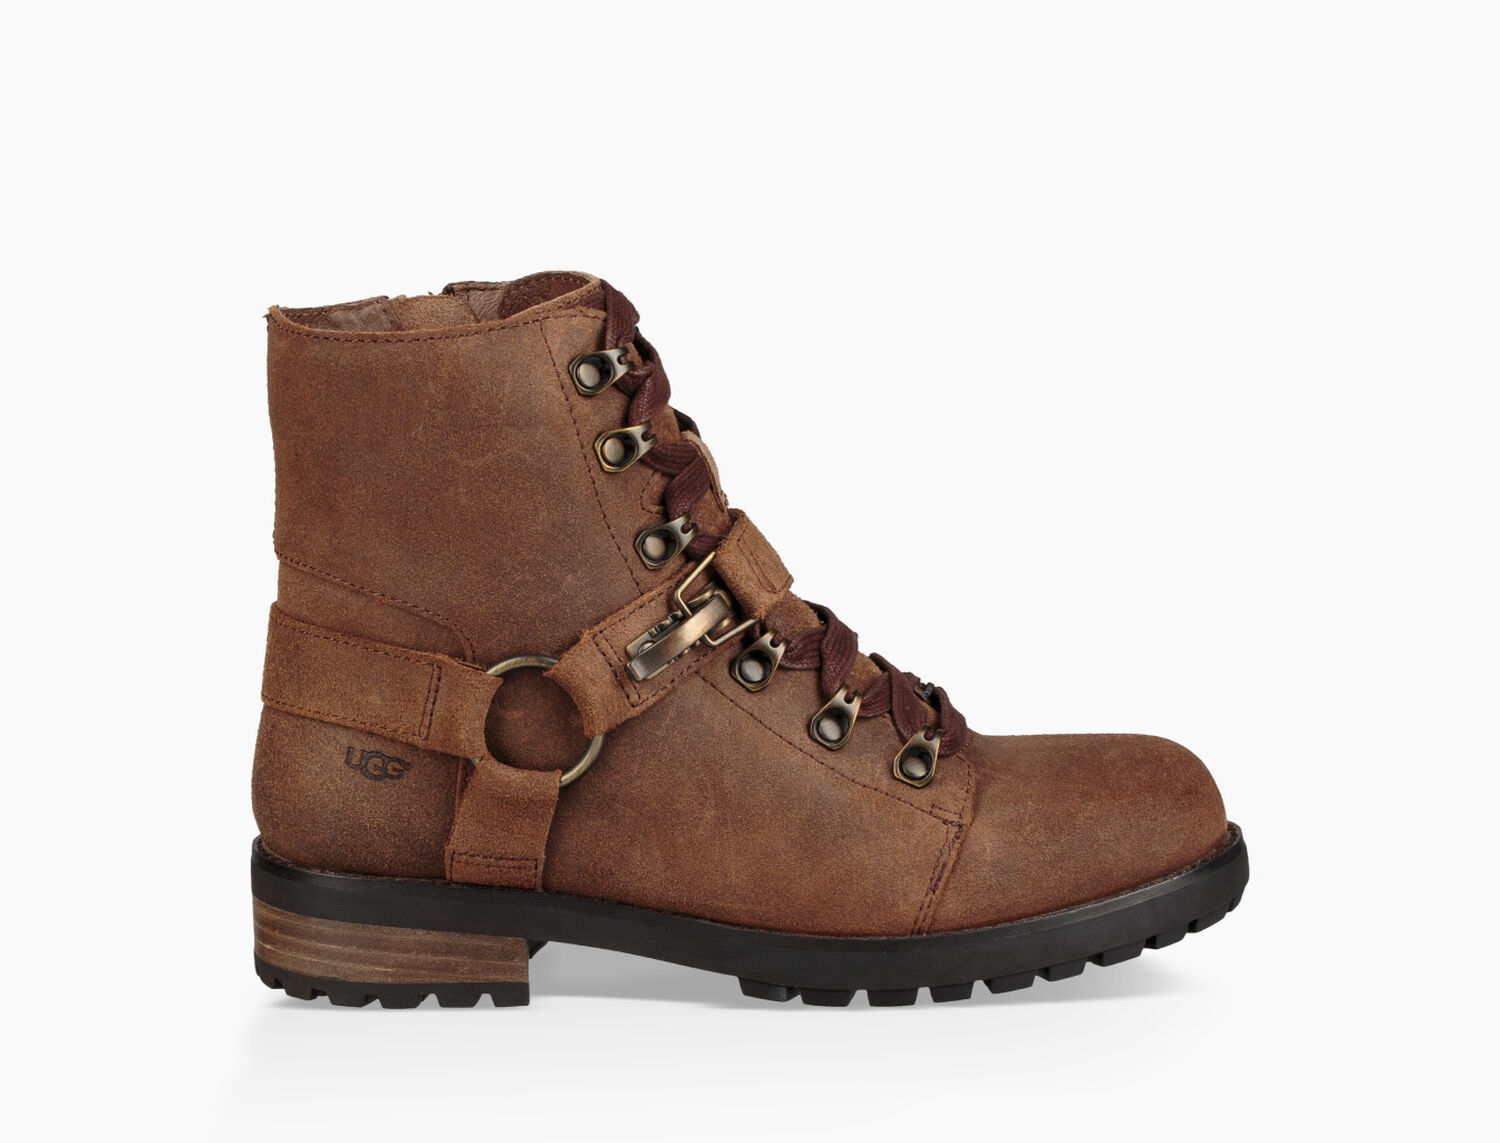 c42aa1d008c Women's Share this product Fritzi Lace-Up Boot